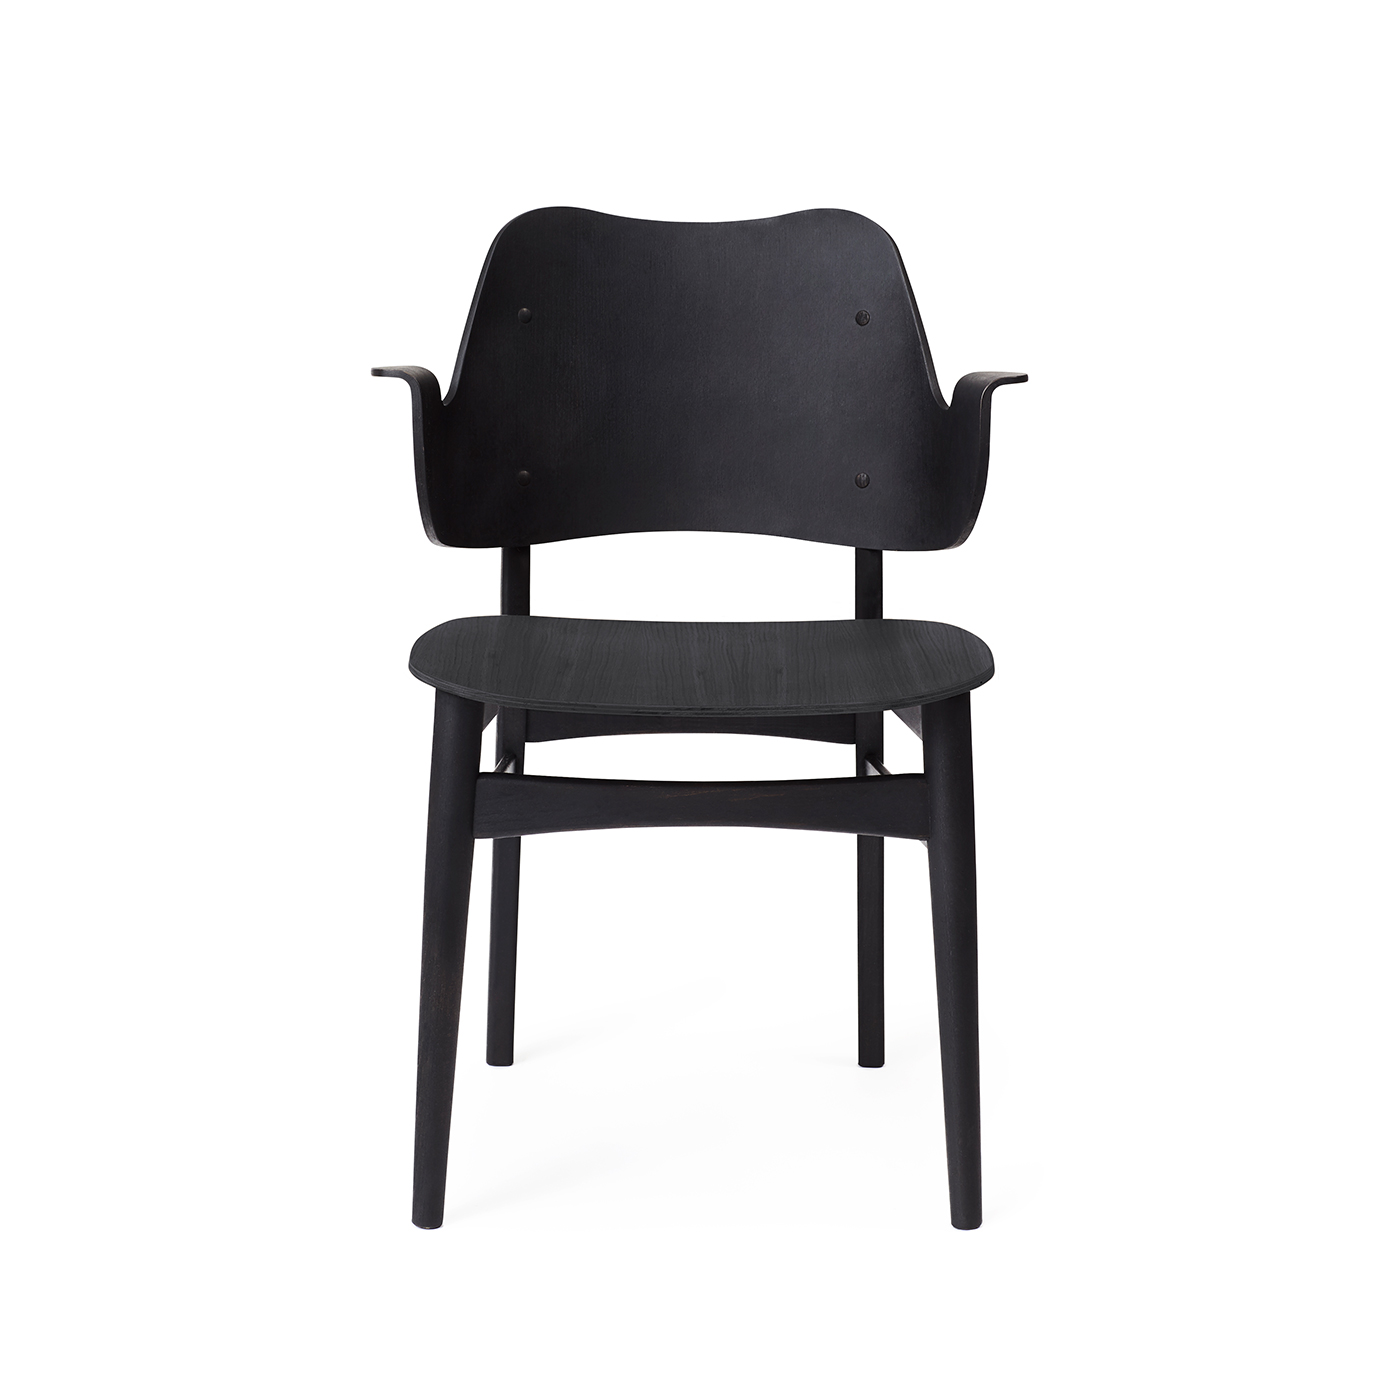 Gesture Chair - Black Lacquer